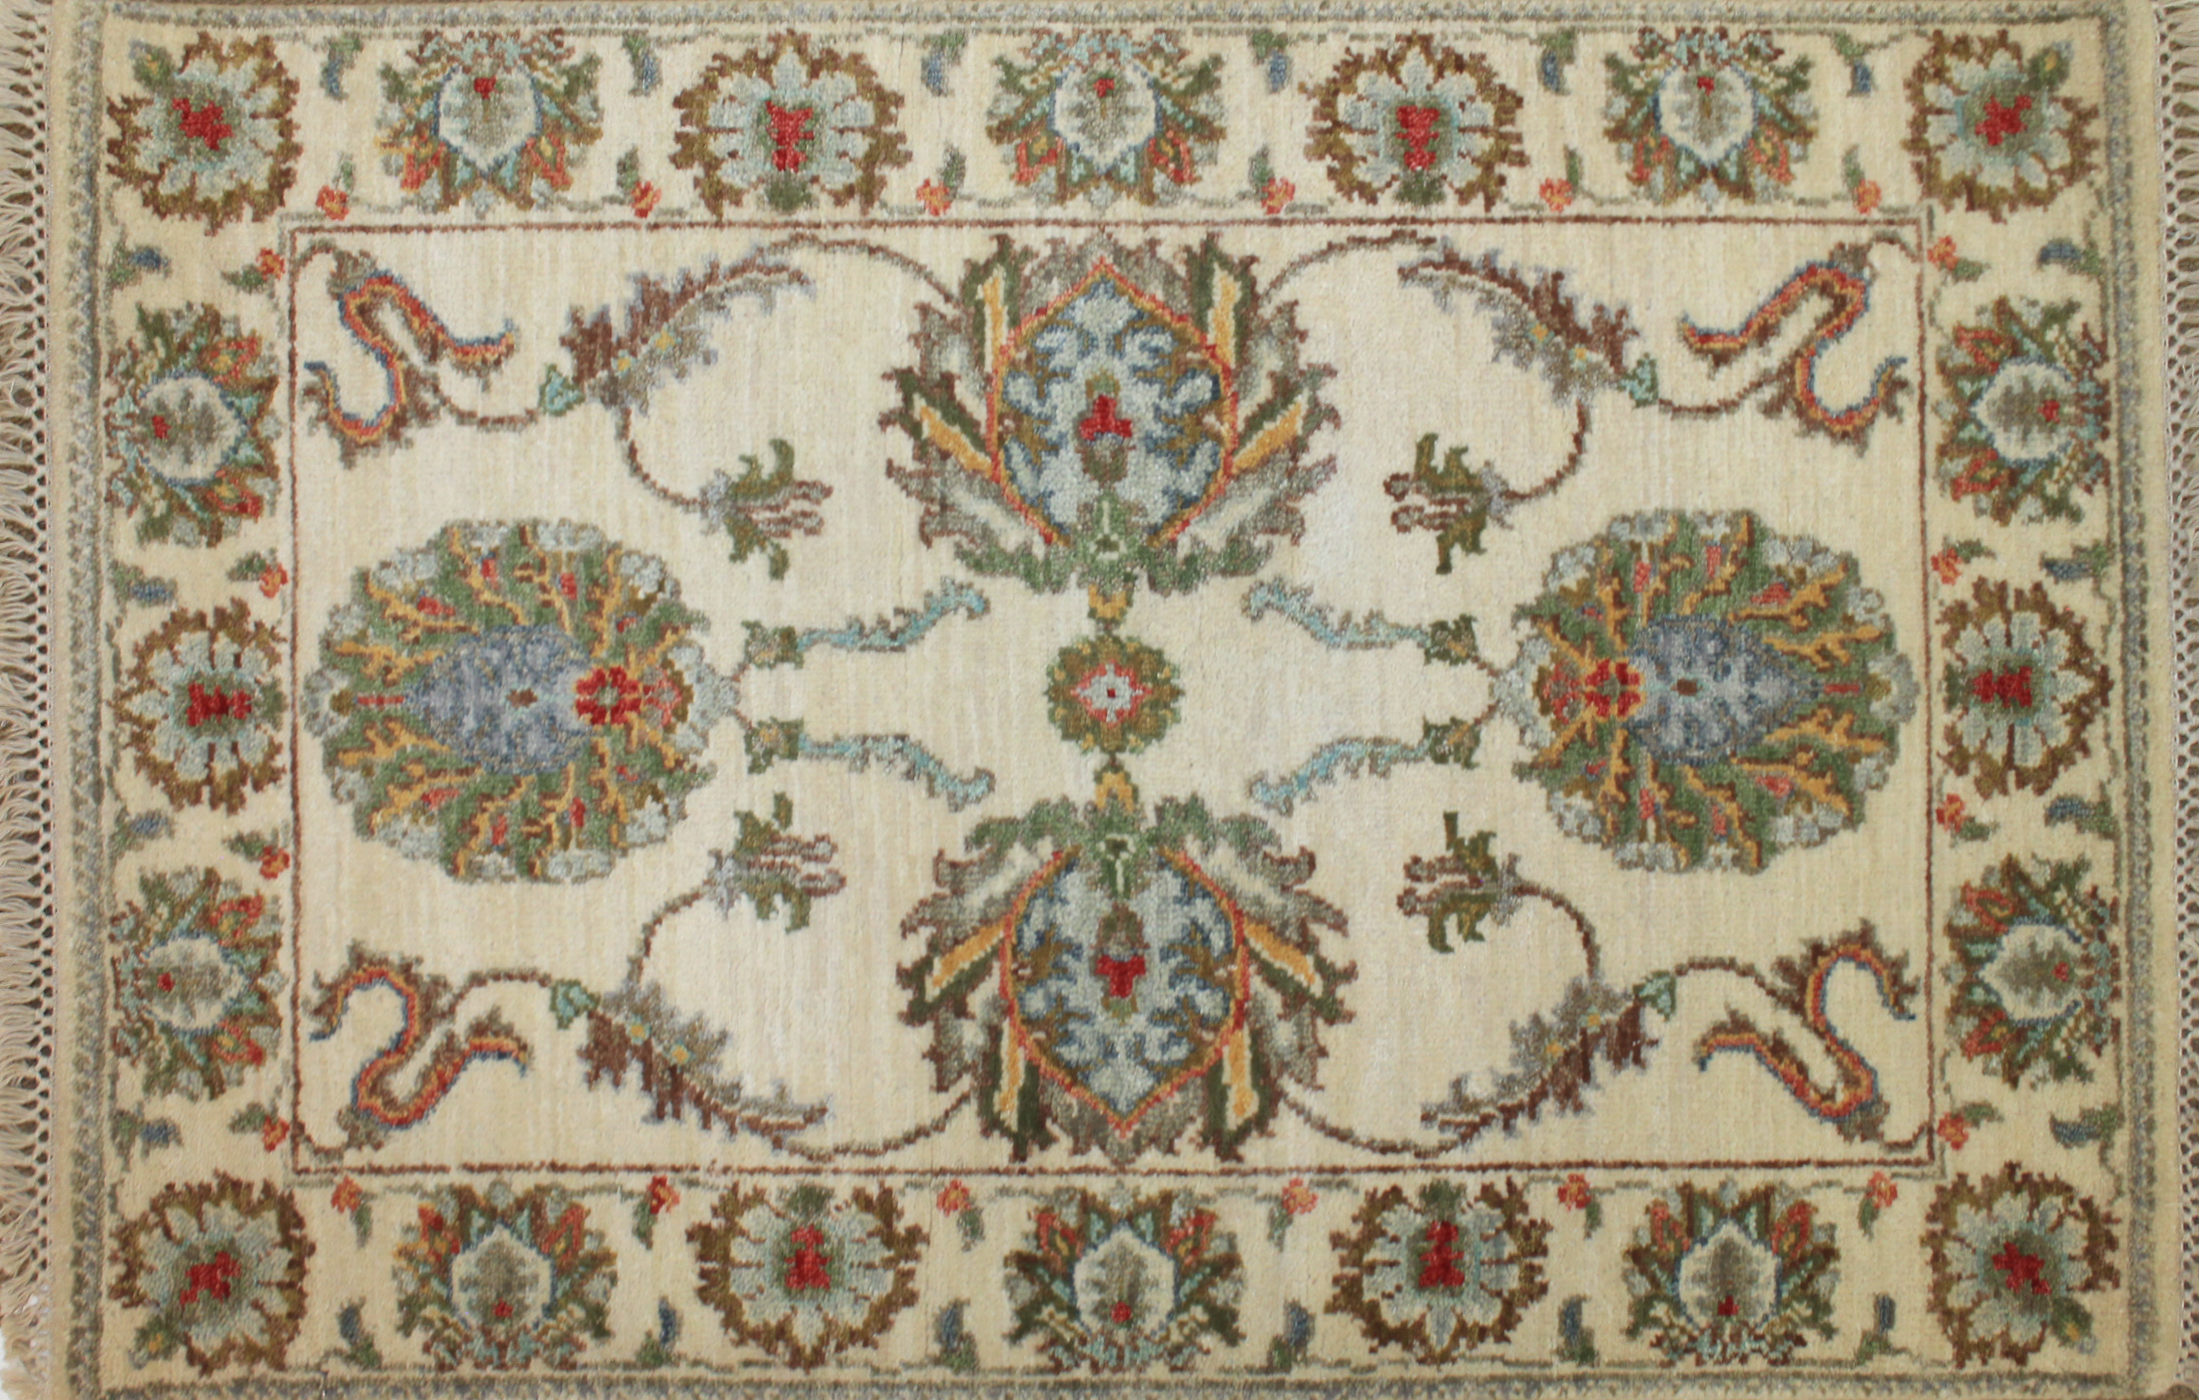 2X3 Traditional Hand Knotted Wool Area Rug - MR024758